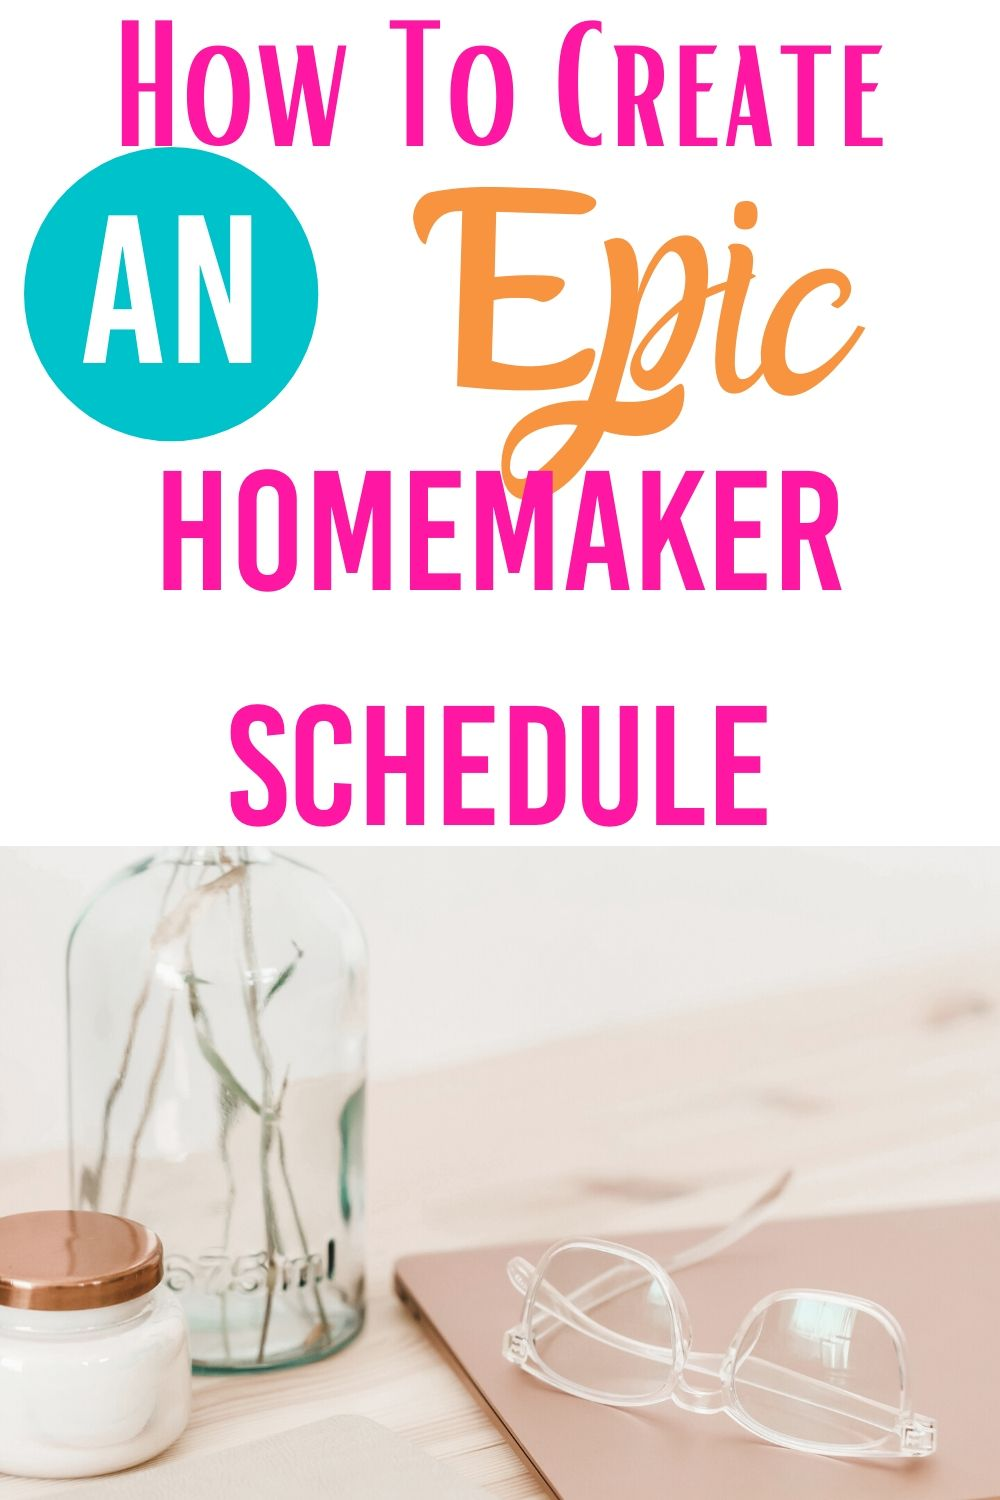 Setting up a daily schedule is simple by following the steps I share in this post. Your modern homemaking schedule is going or organize your time with these time management tips. #schedule #dailyschedule #timemanagement #momschedule #homemaking #SAHM #WAHM via @homebyjenn